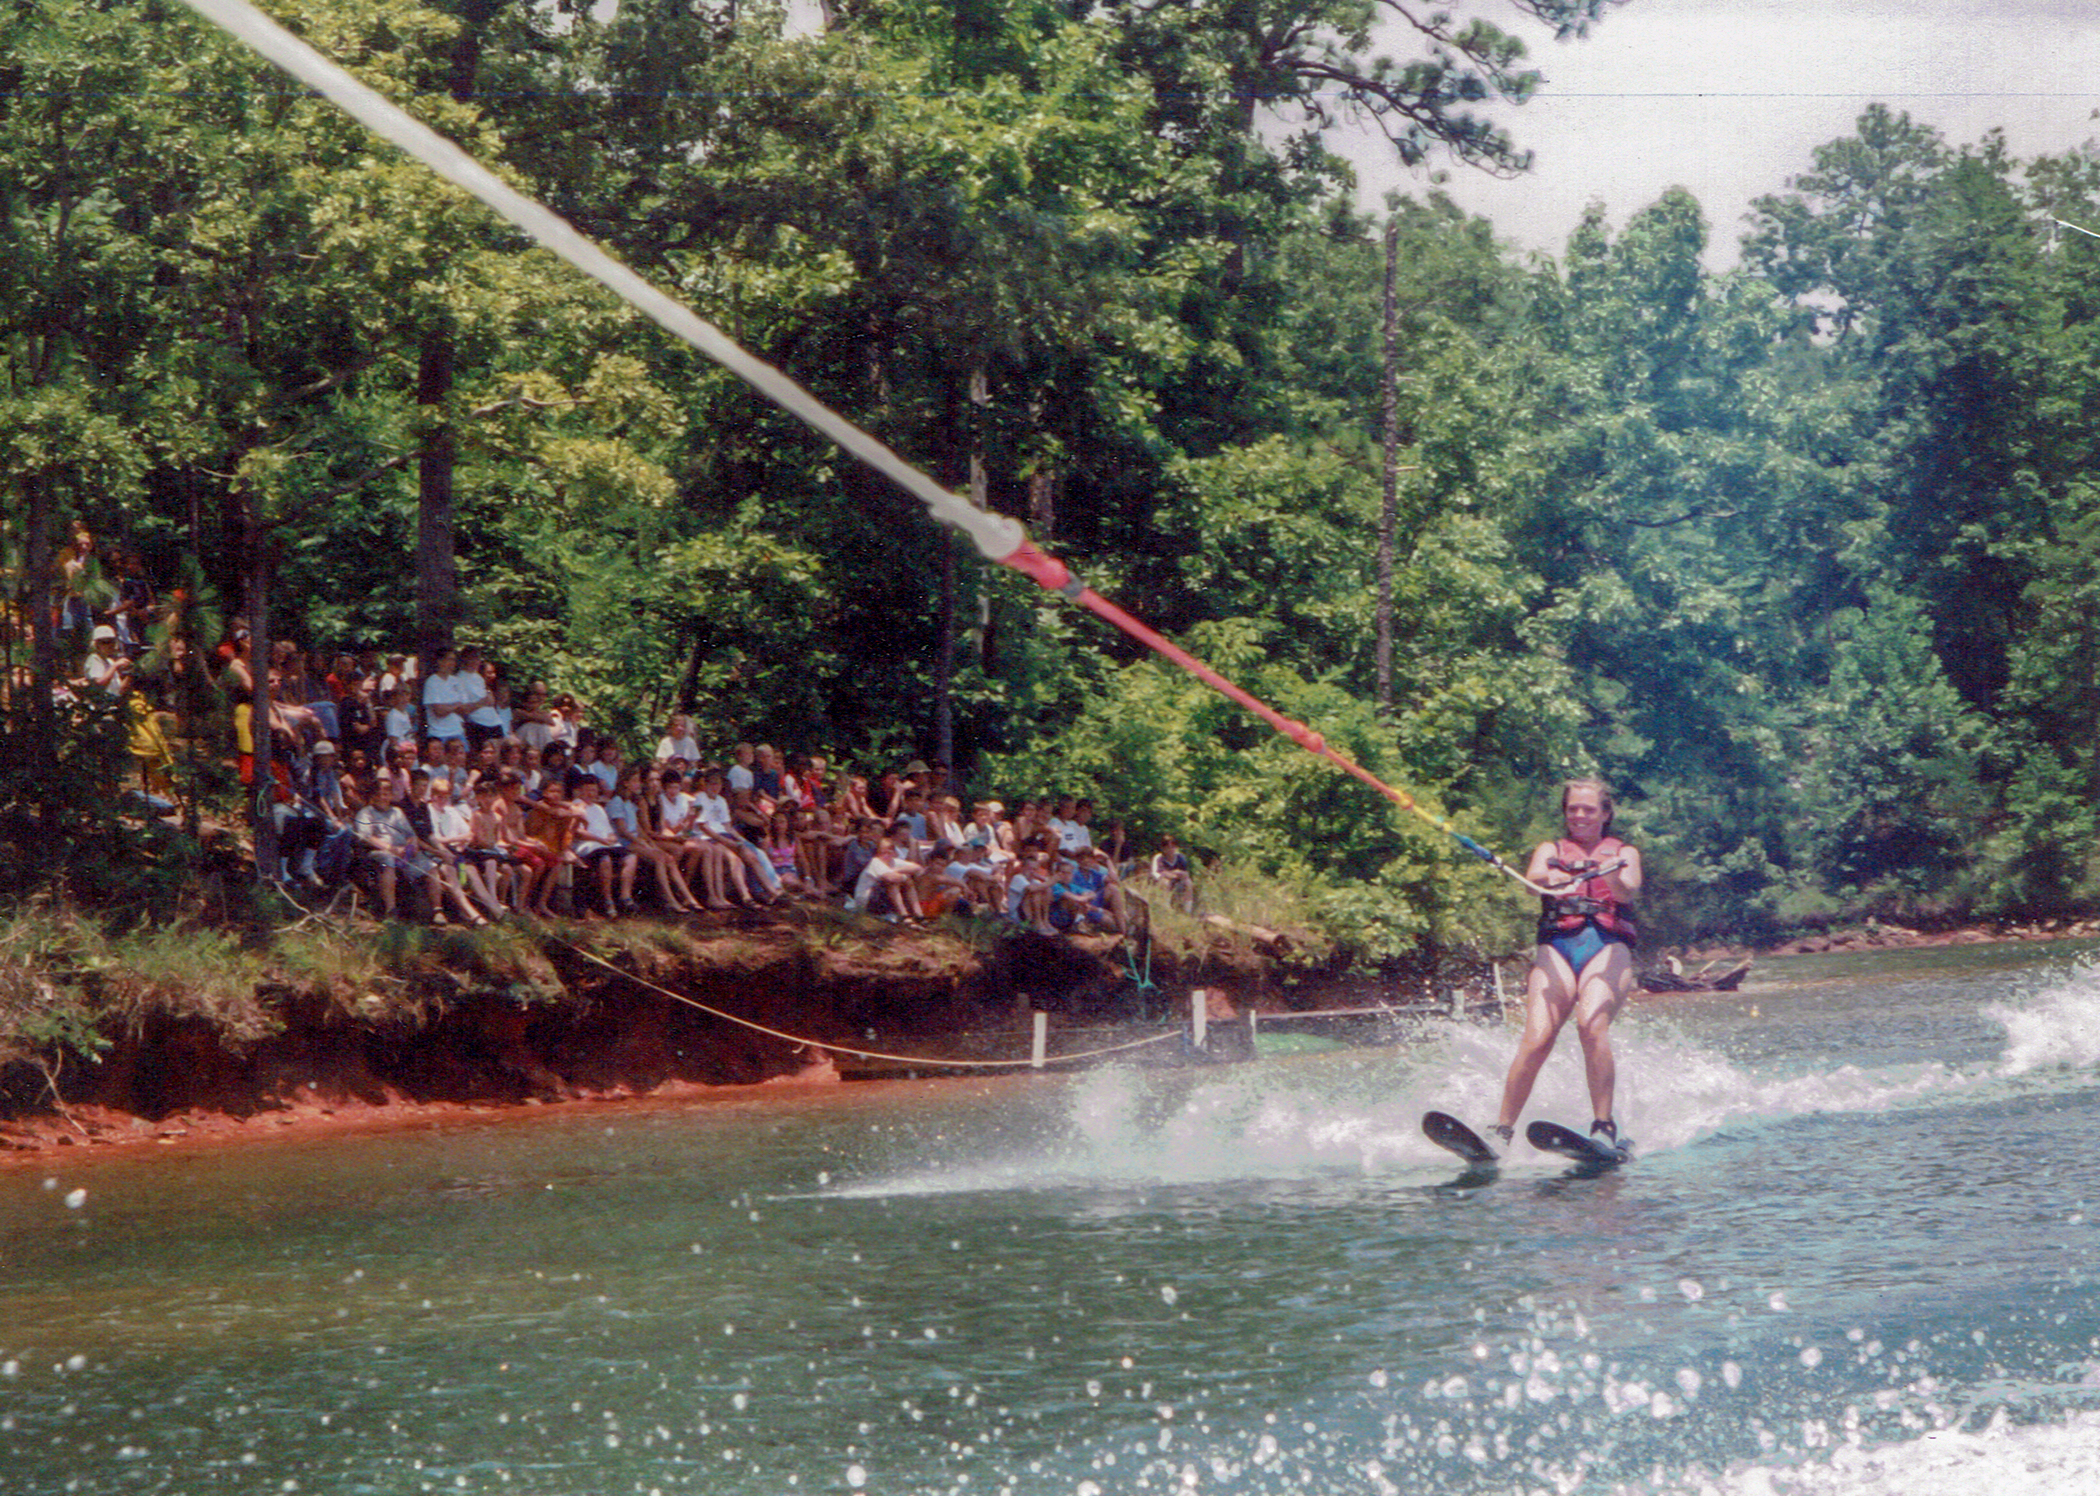 Spectators look on as young lady performs for the ski show on Lake Martin at Camp Alamisco.